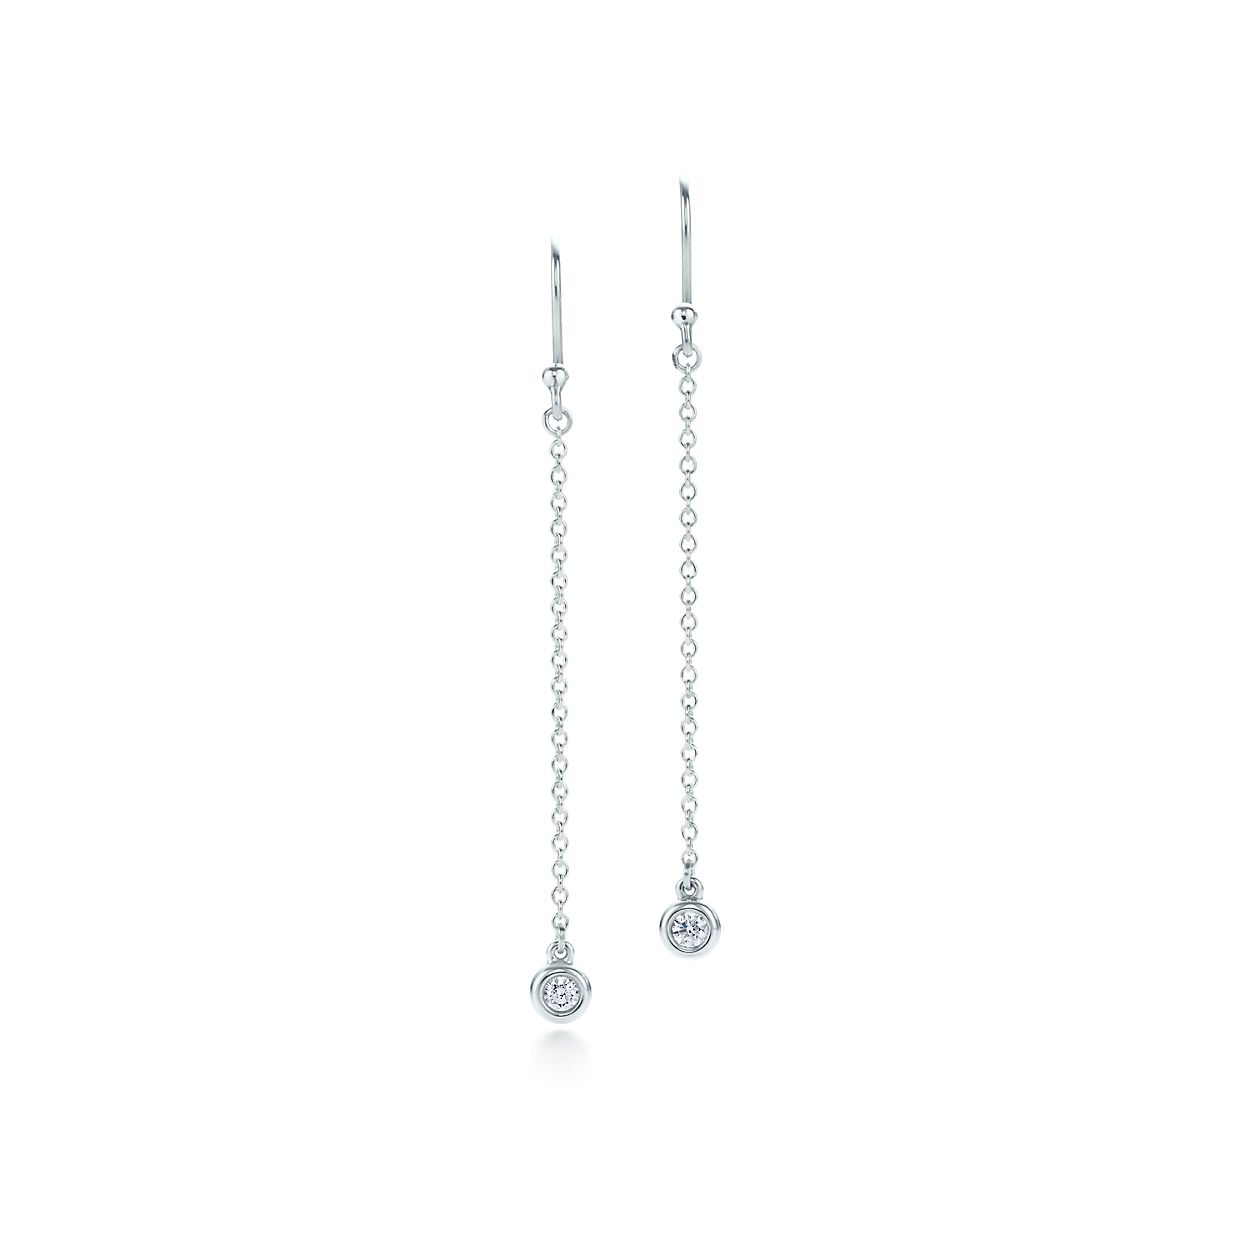 Elsa Peretti Diamonds By The Yard Drop Earrings